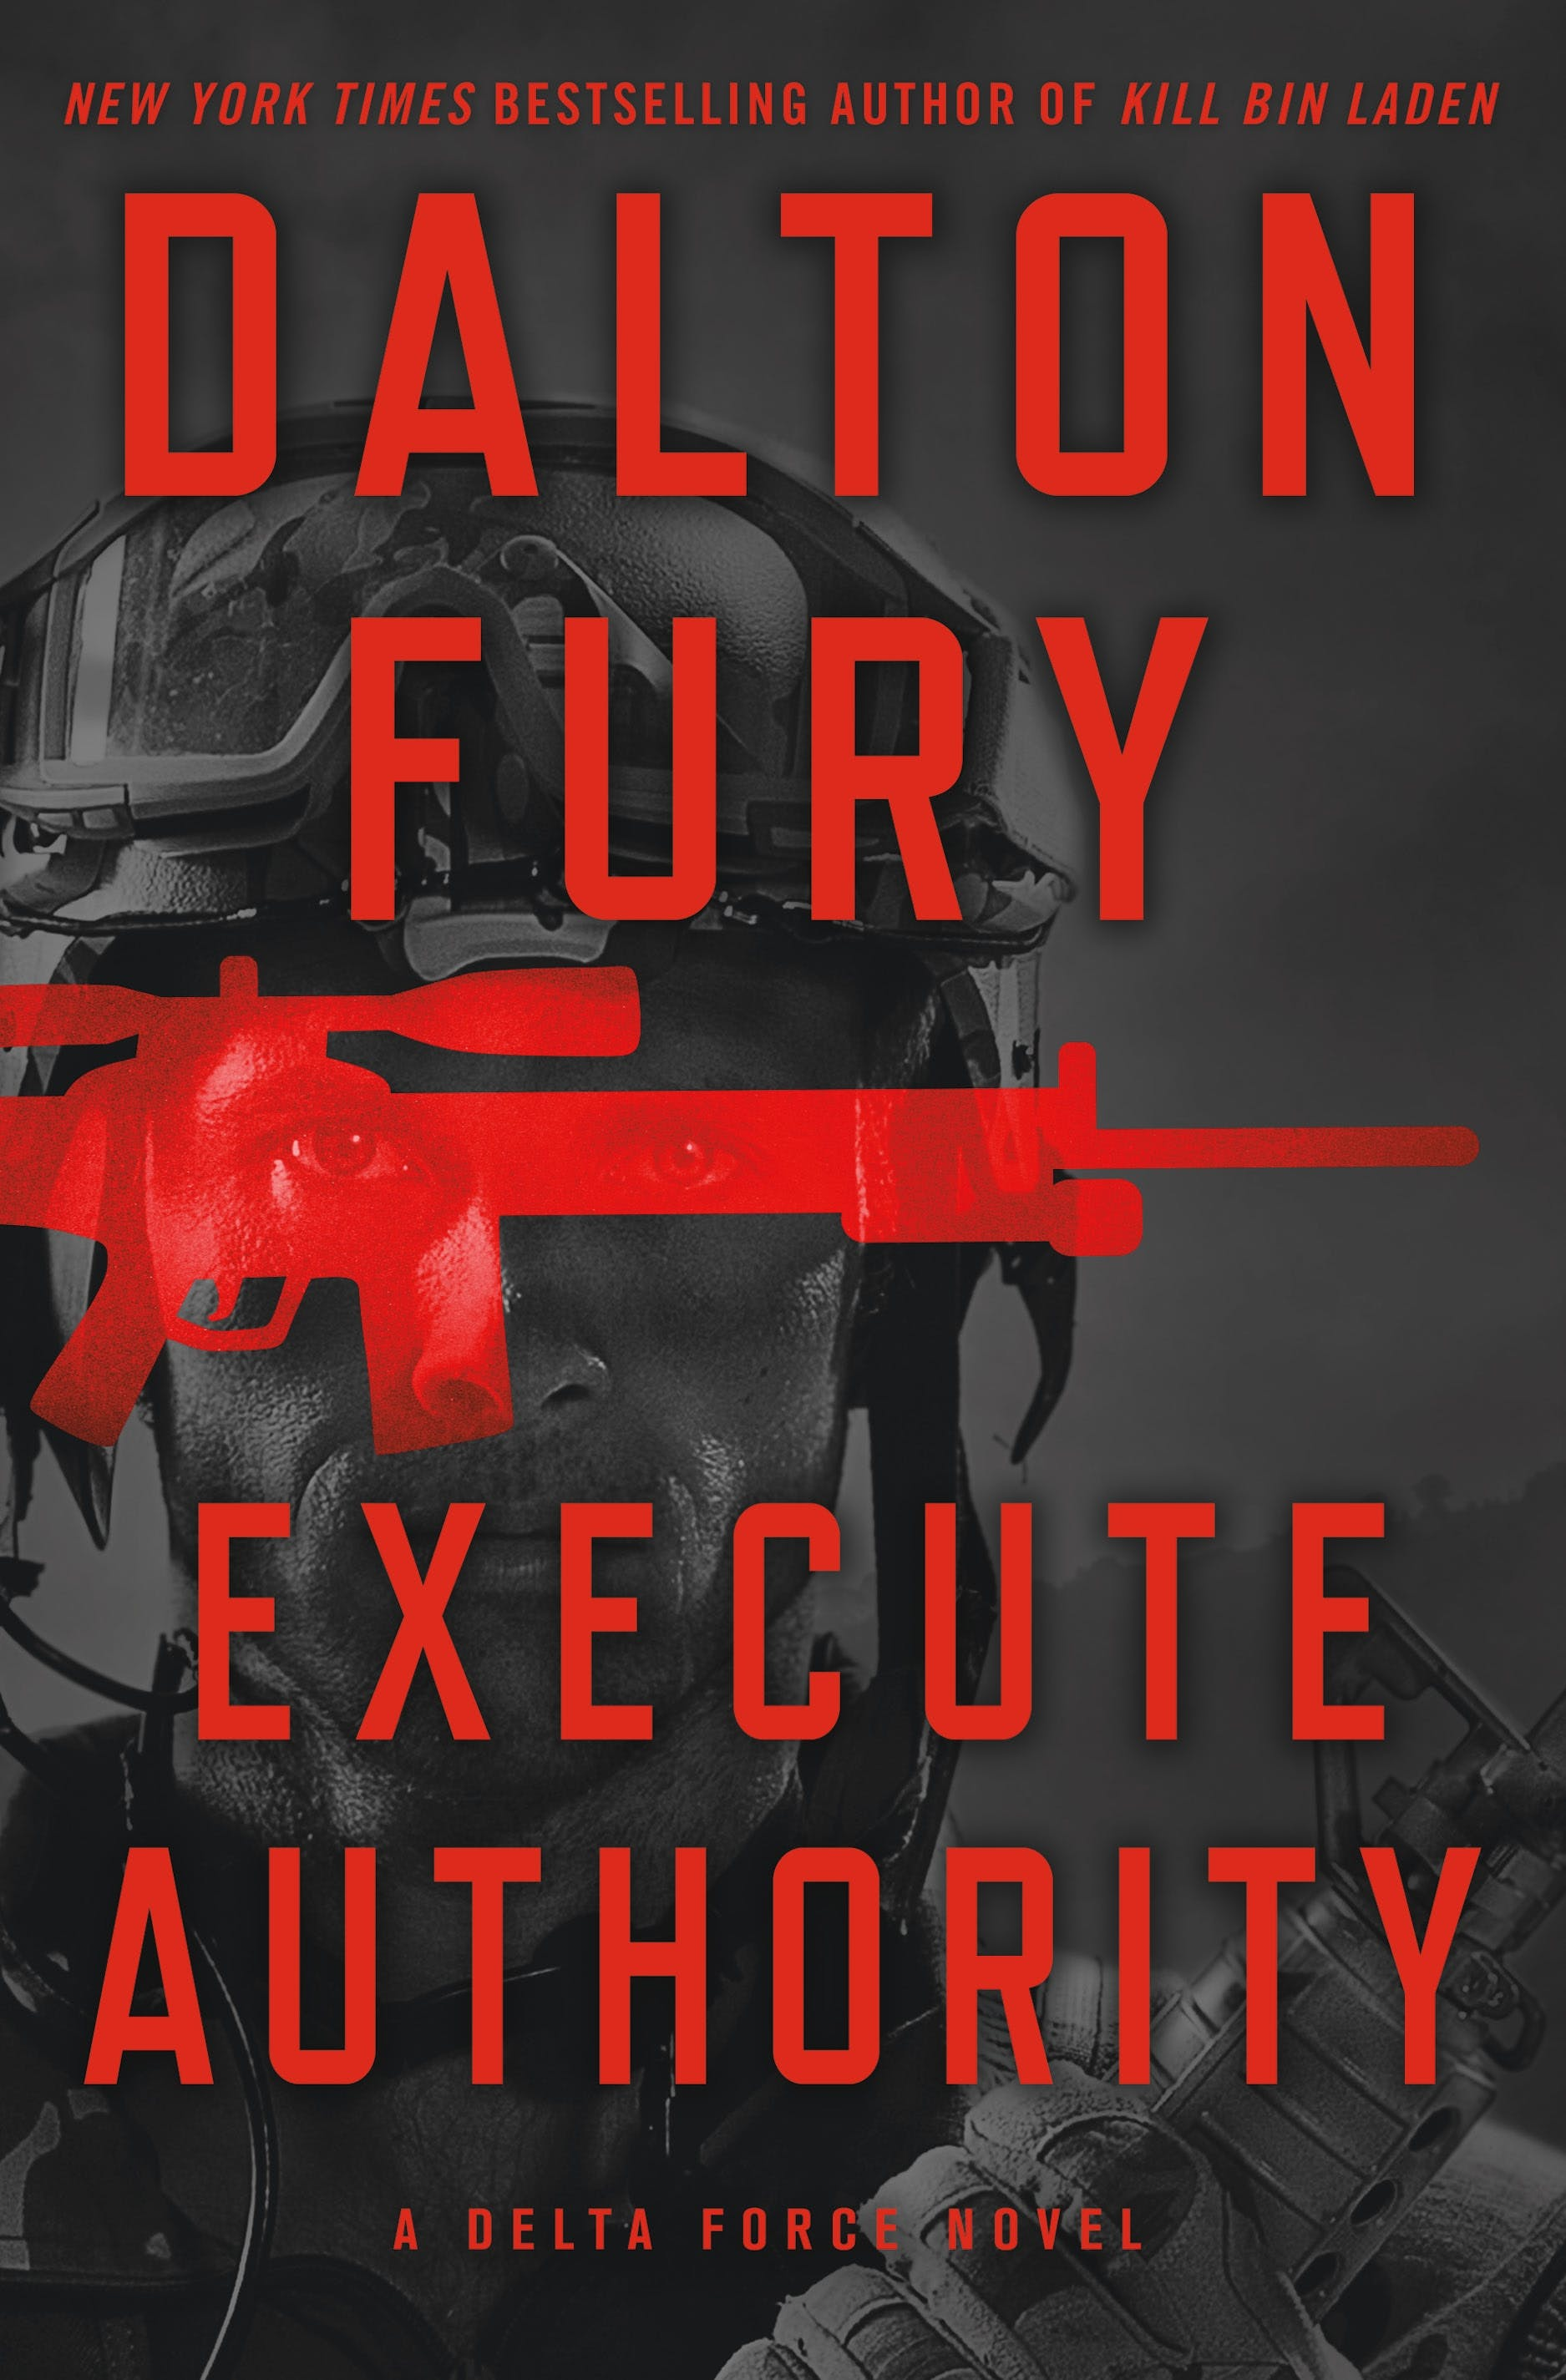 Image of Execute Authority